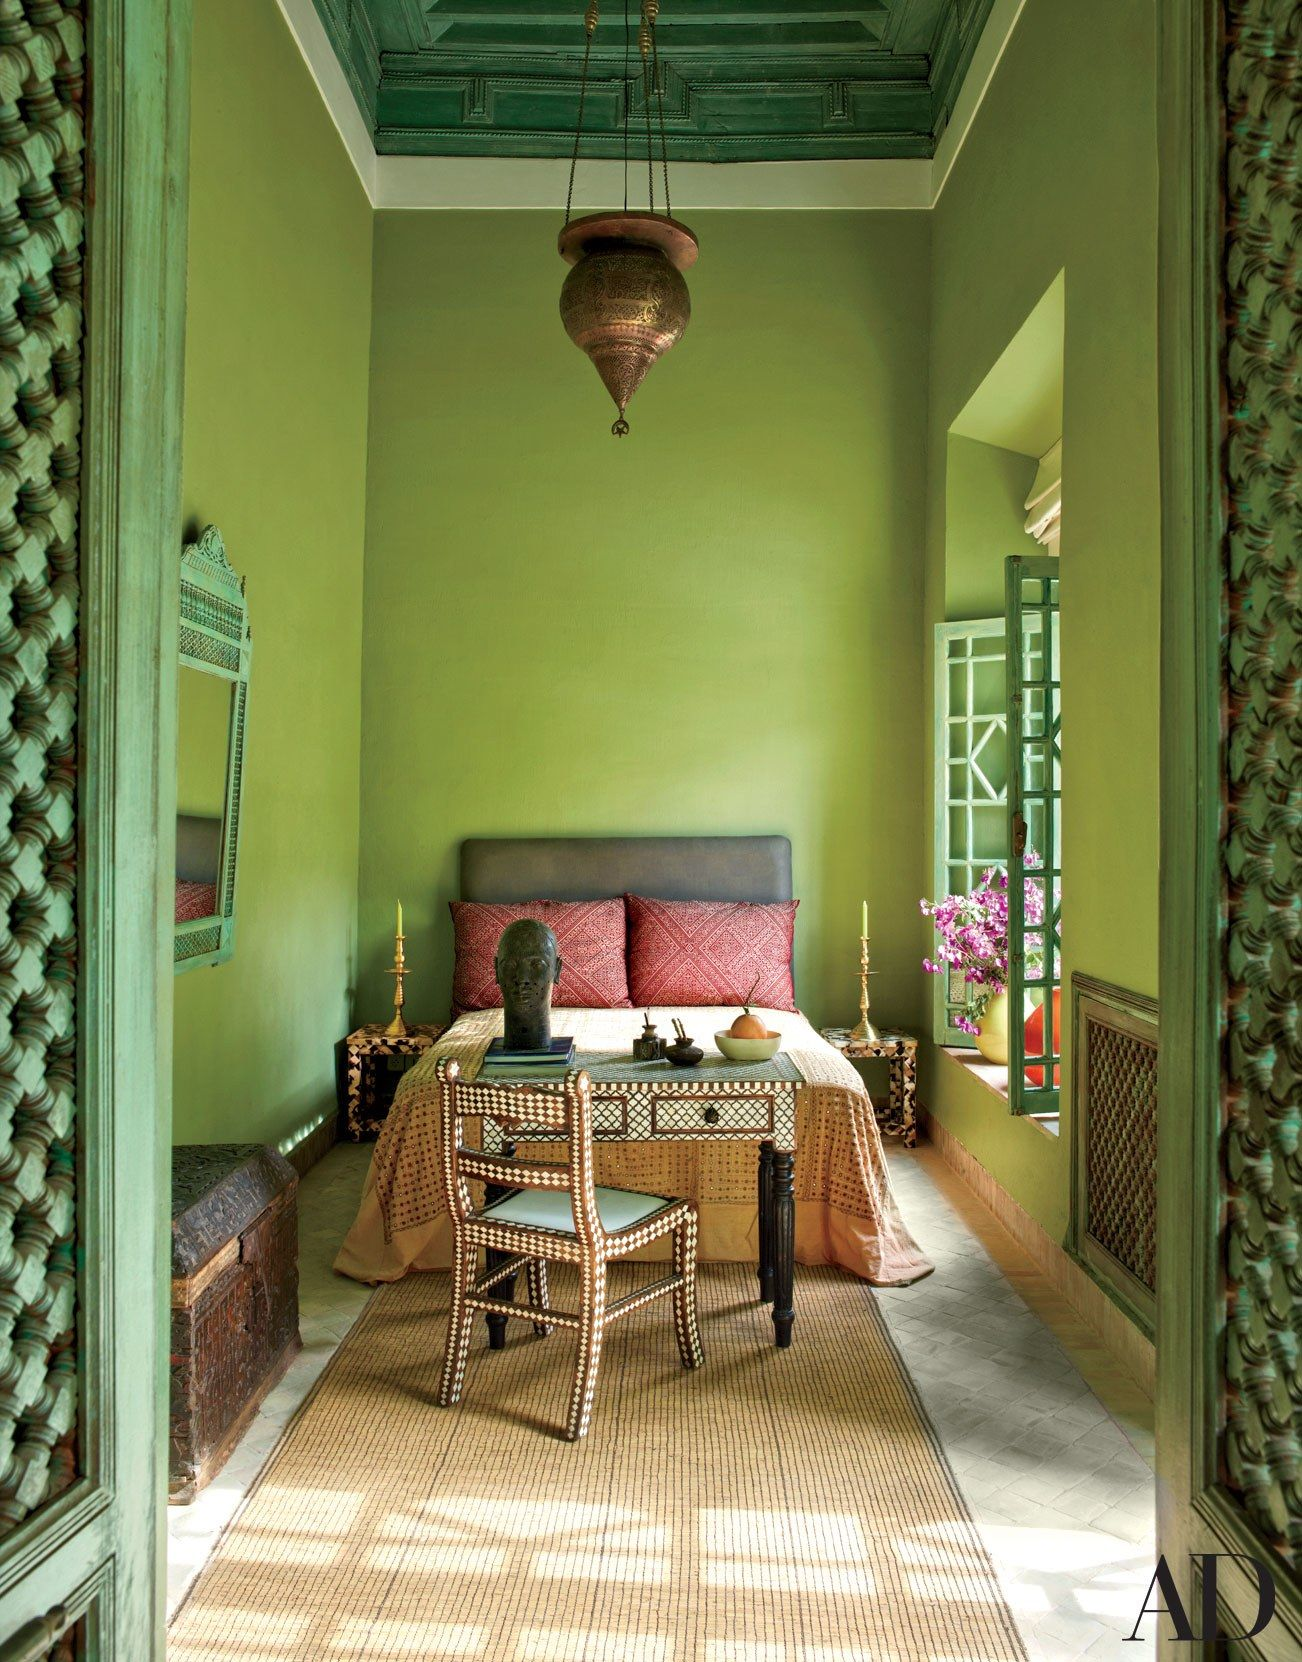 A 19th-century Persian light hangs in the Green Bedroom of a Marrakech riad designed by Chilean artist Claudio Bravo; the bedspread is Gujarati mirrorwork embroidery, the chest is 19th-century Moroccan, and the desk and chair are embellished with bone inlay.